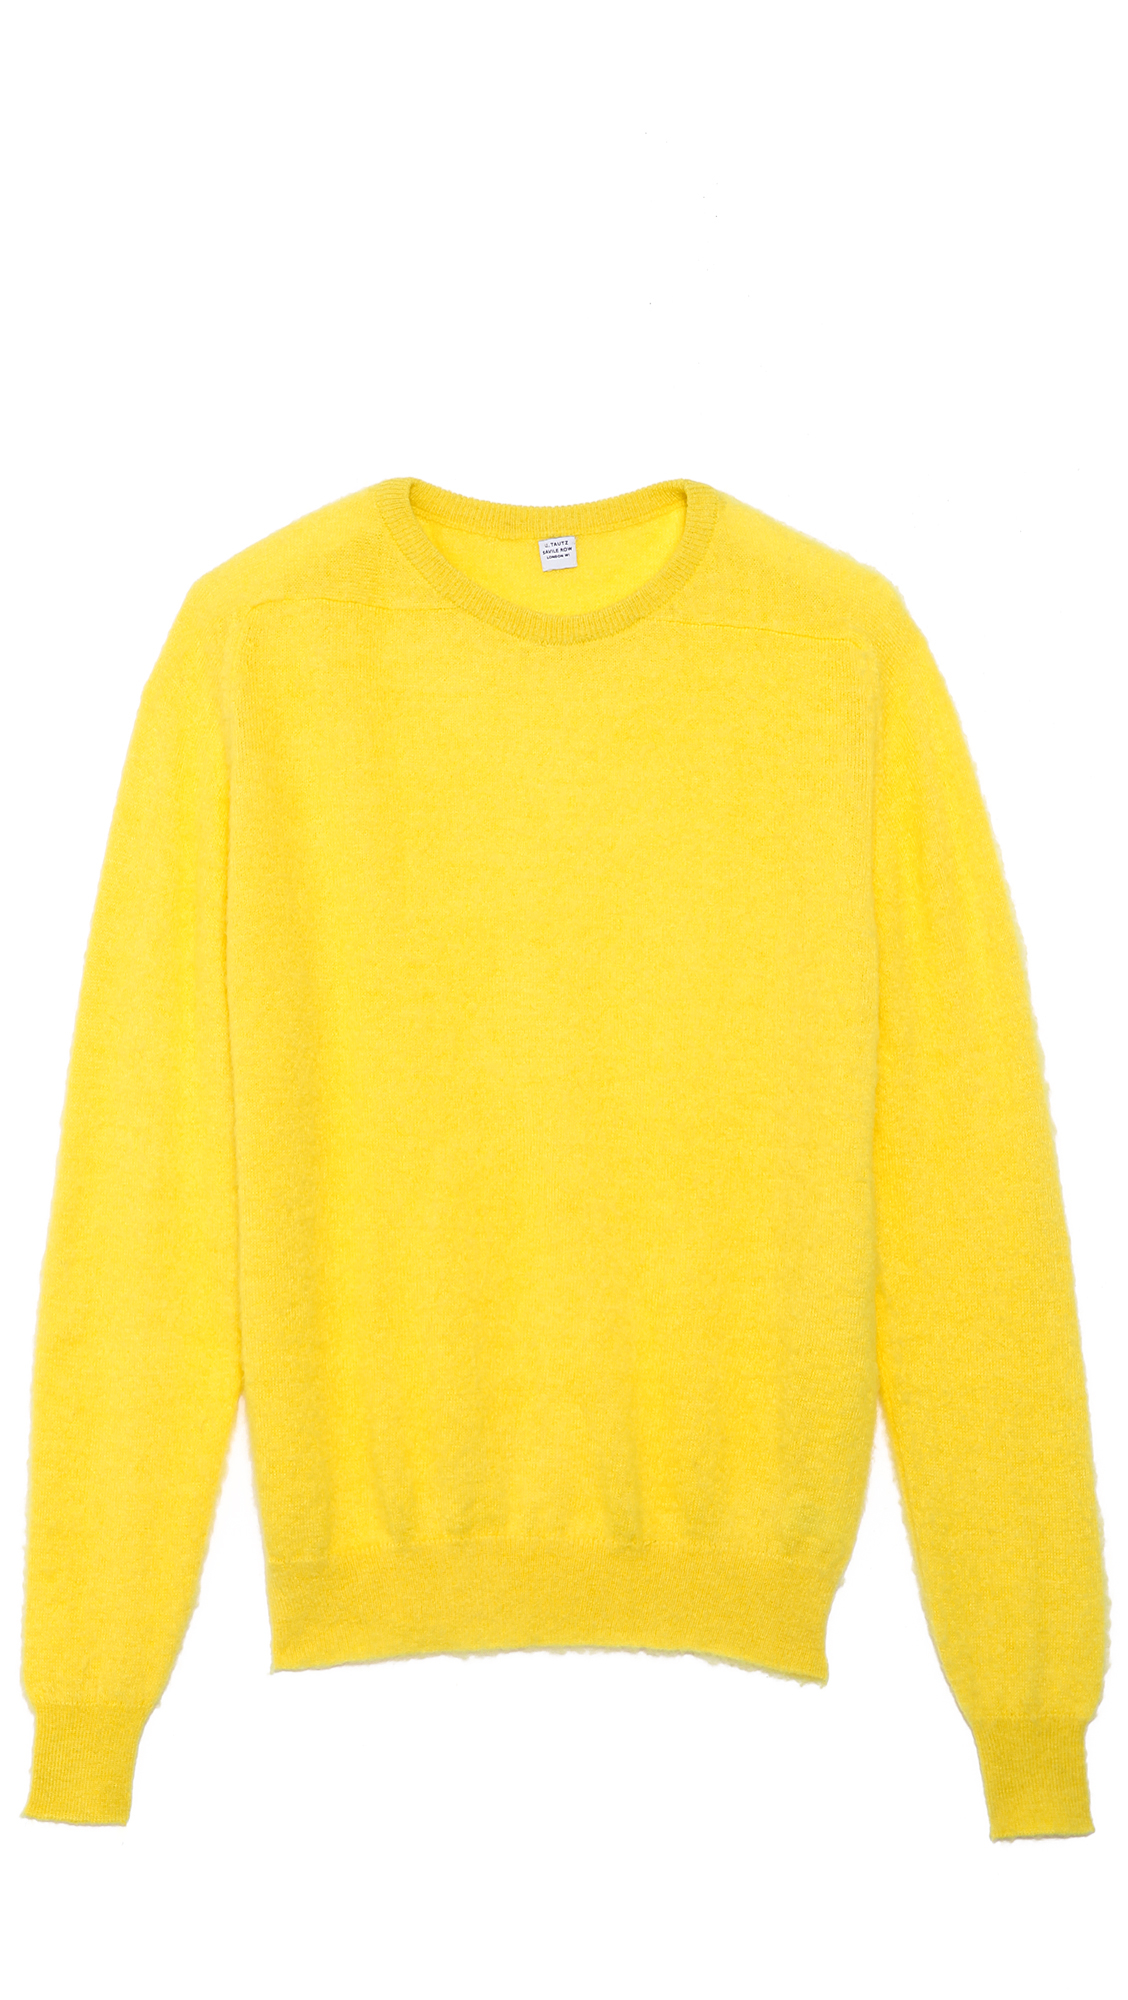 E. tautz Crew Neck Sweater in Yellow for Men | Lyst